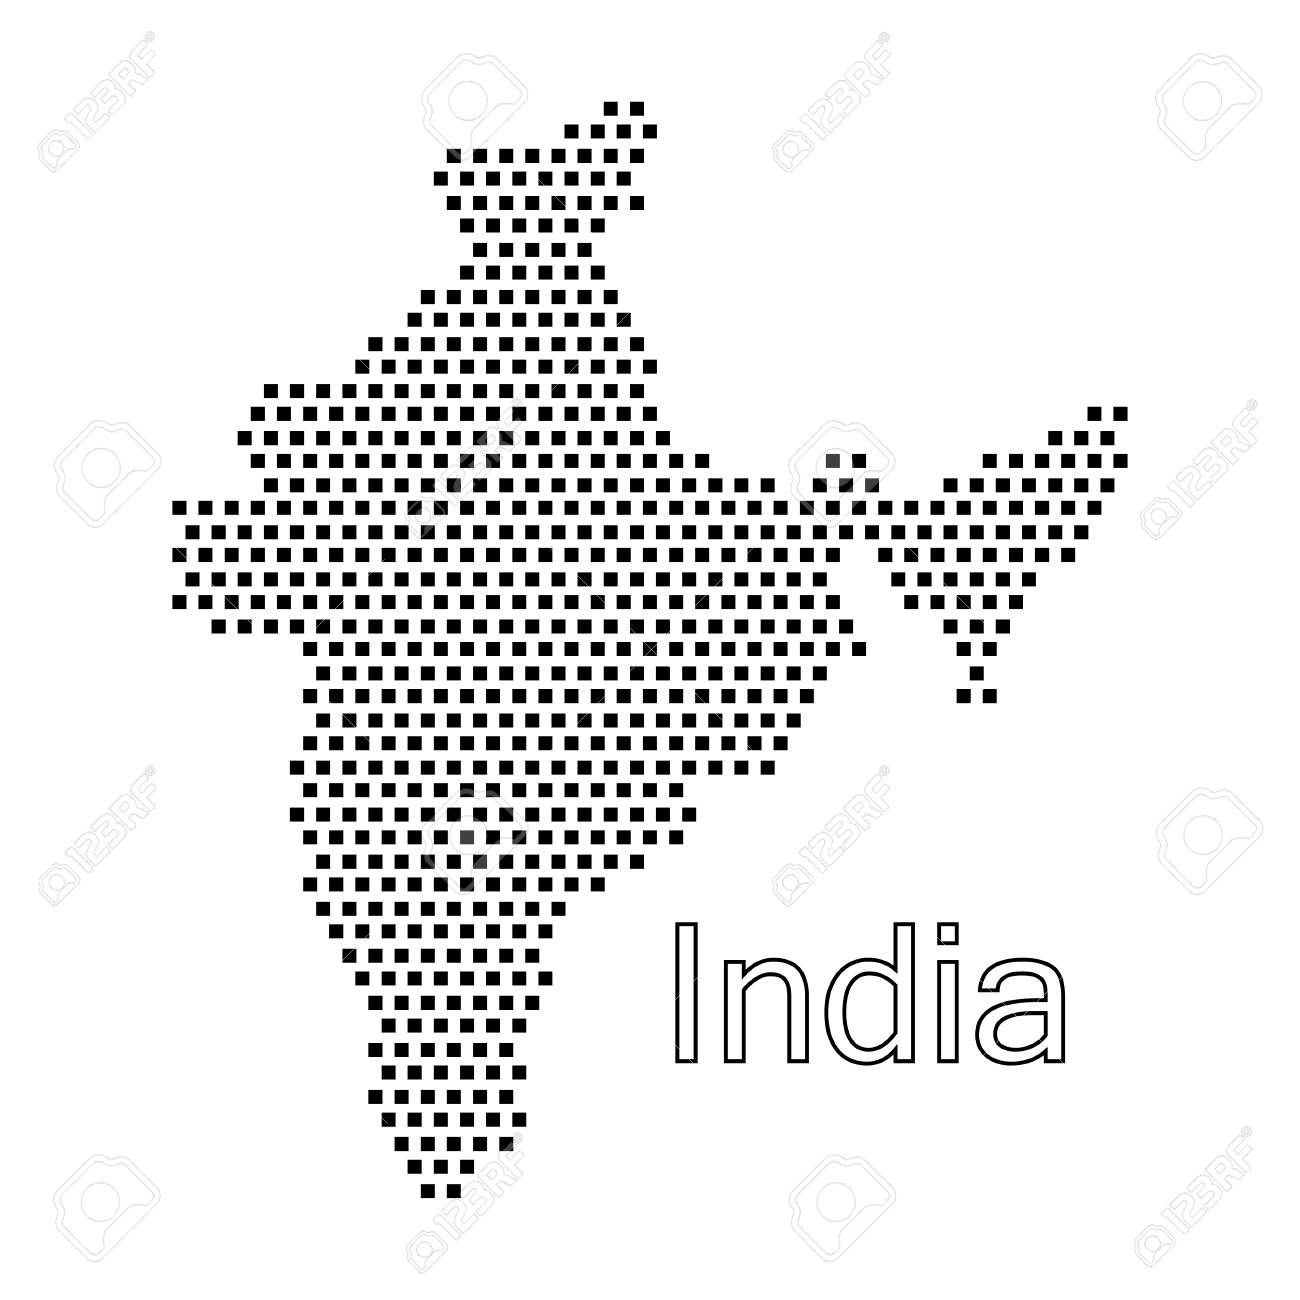 map of India,dot